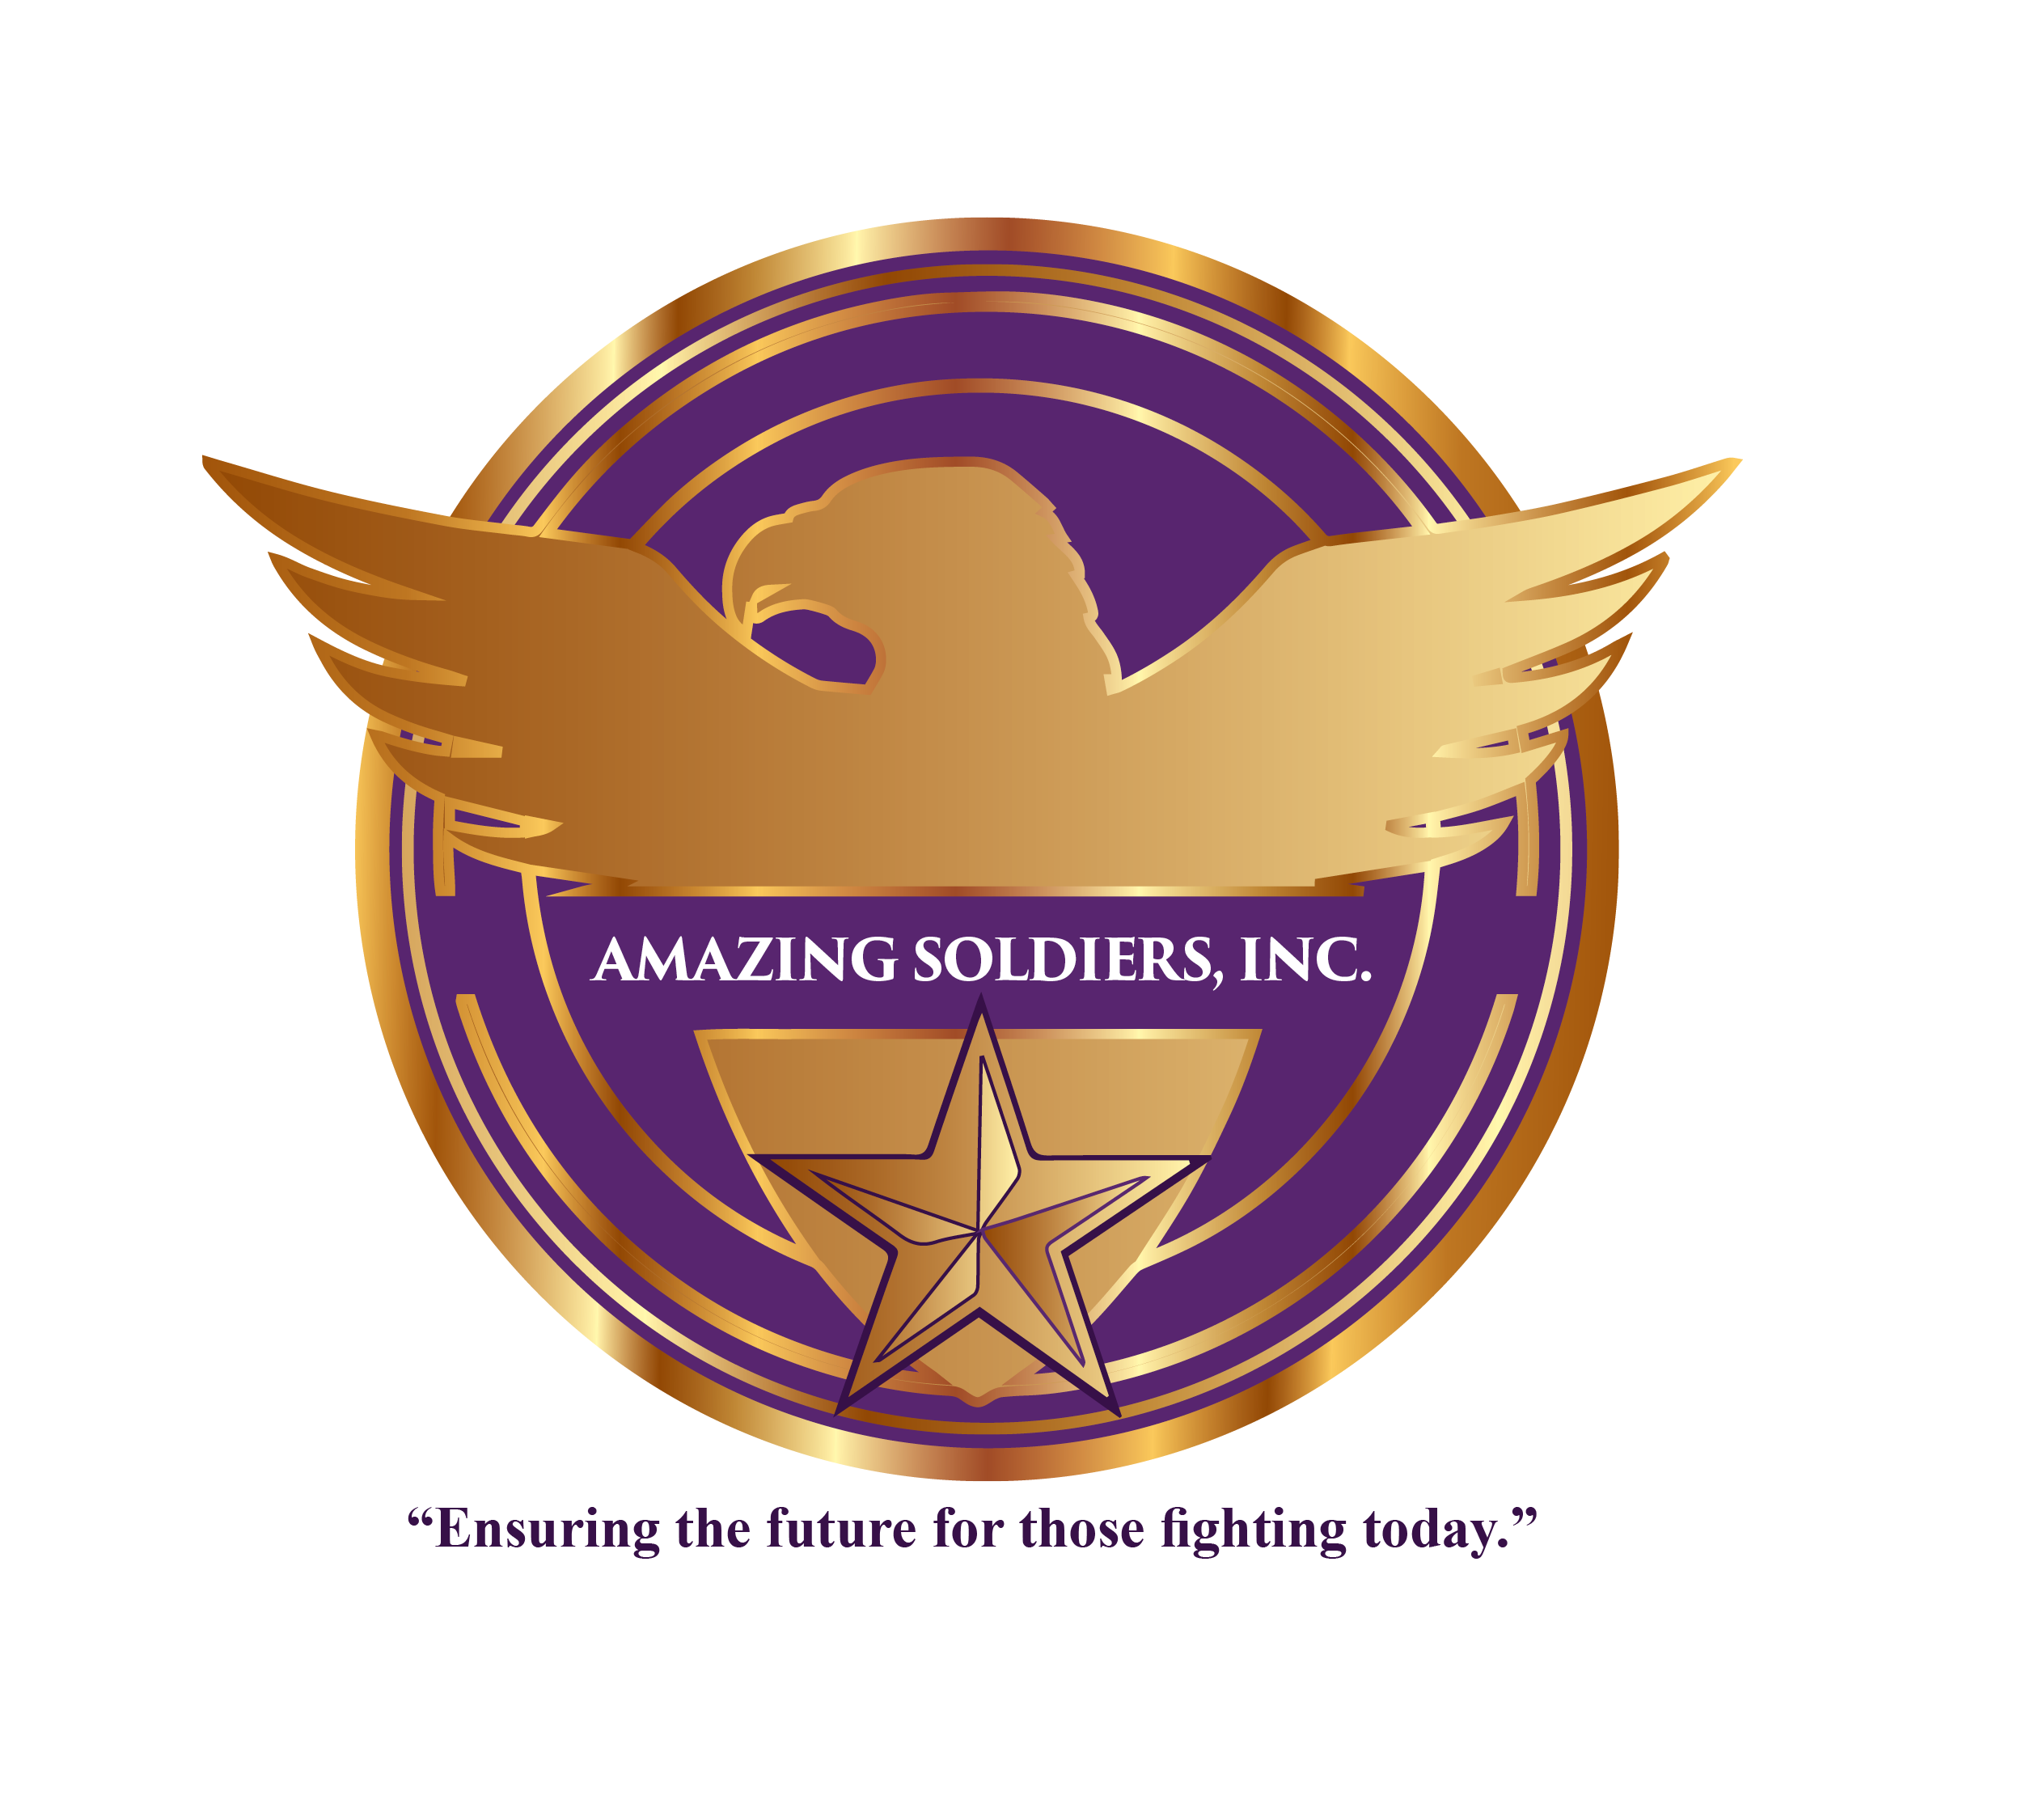 Amazing Soldiers